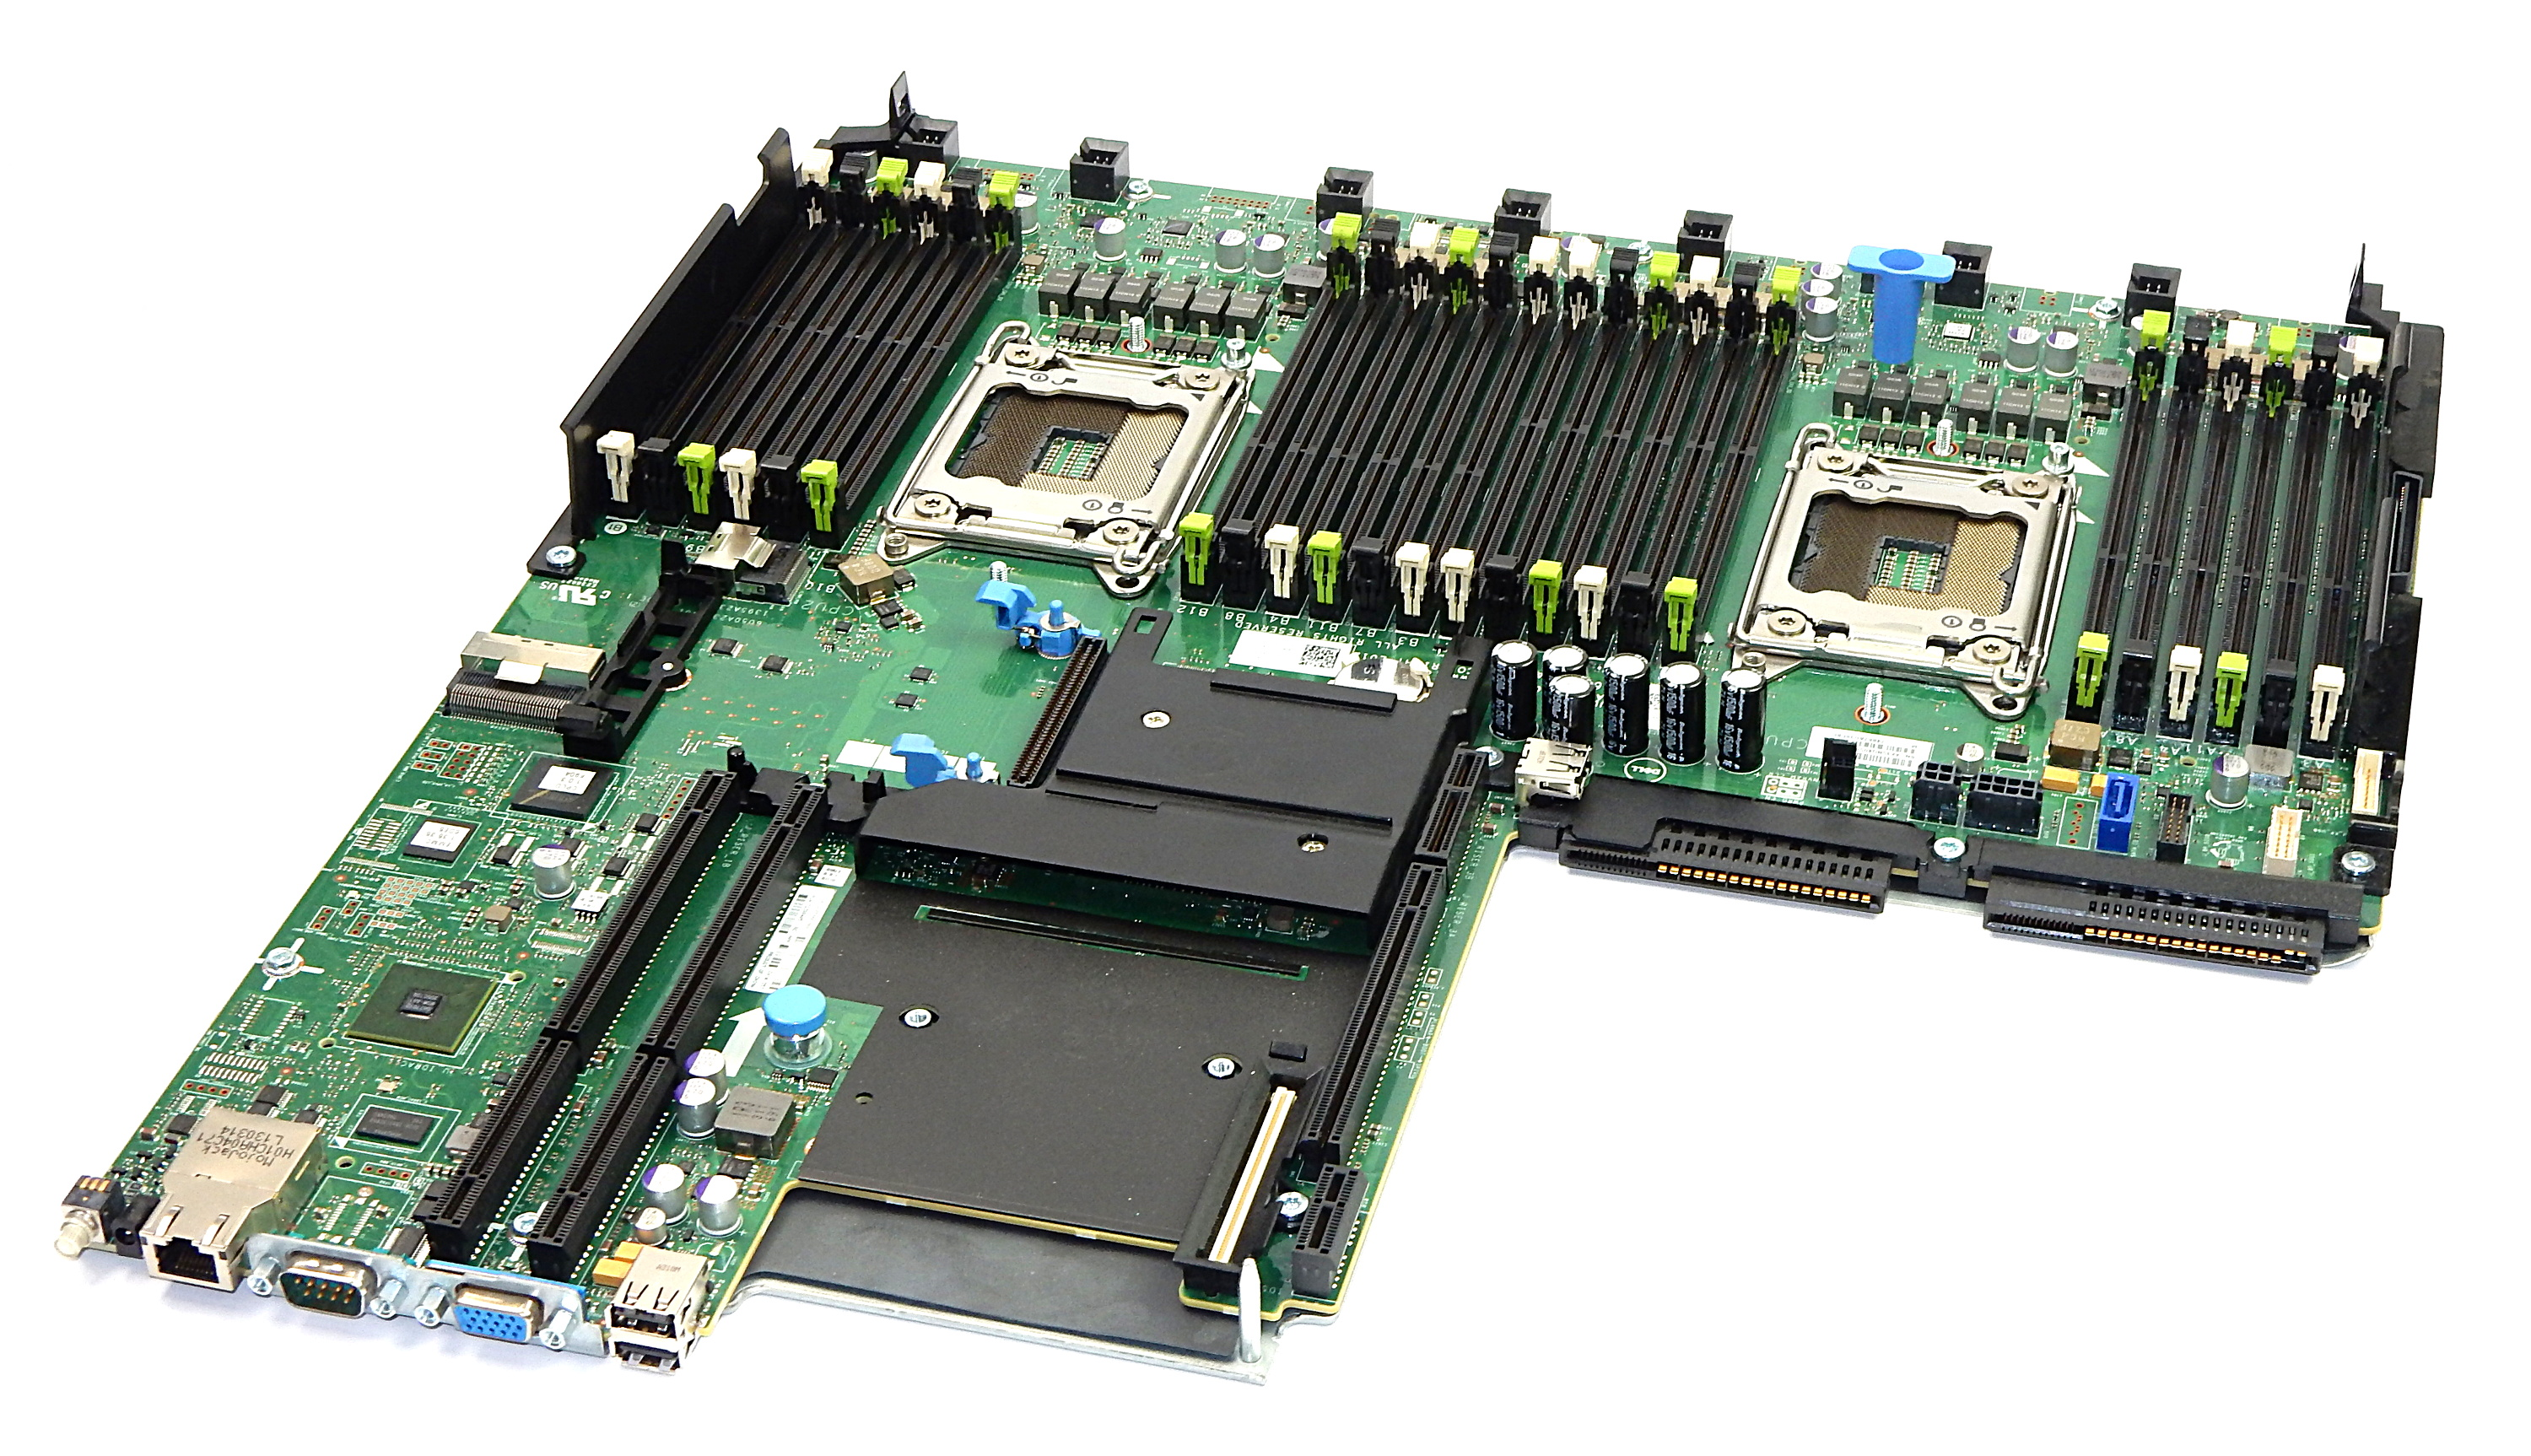 Dell PXXHP Poweredge R620 System Board Motherboard